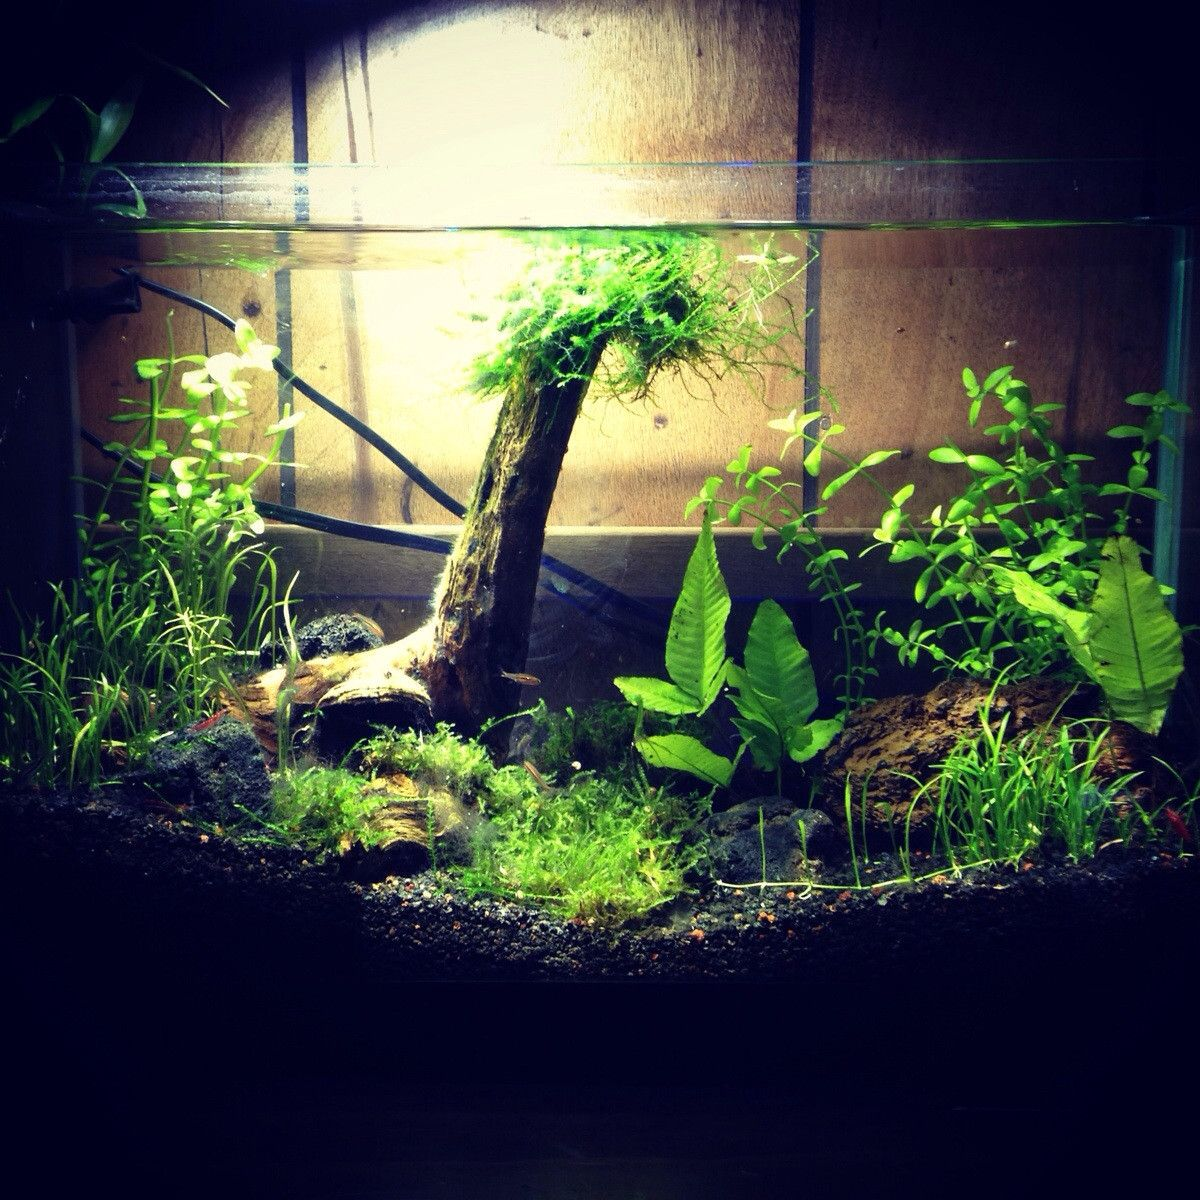 Freshwater fish for 5 gallon tank - My 5 Gallon Planted Tank By Gethyphyy